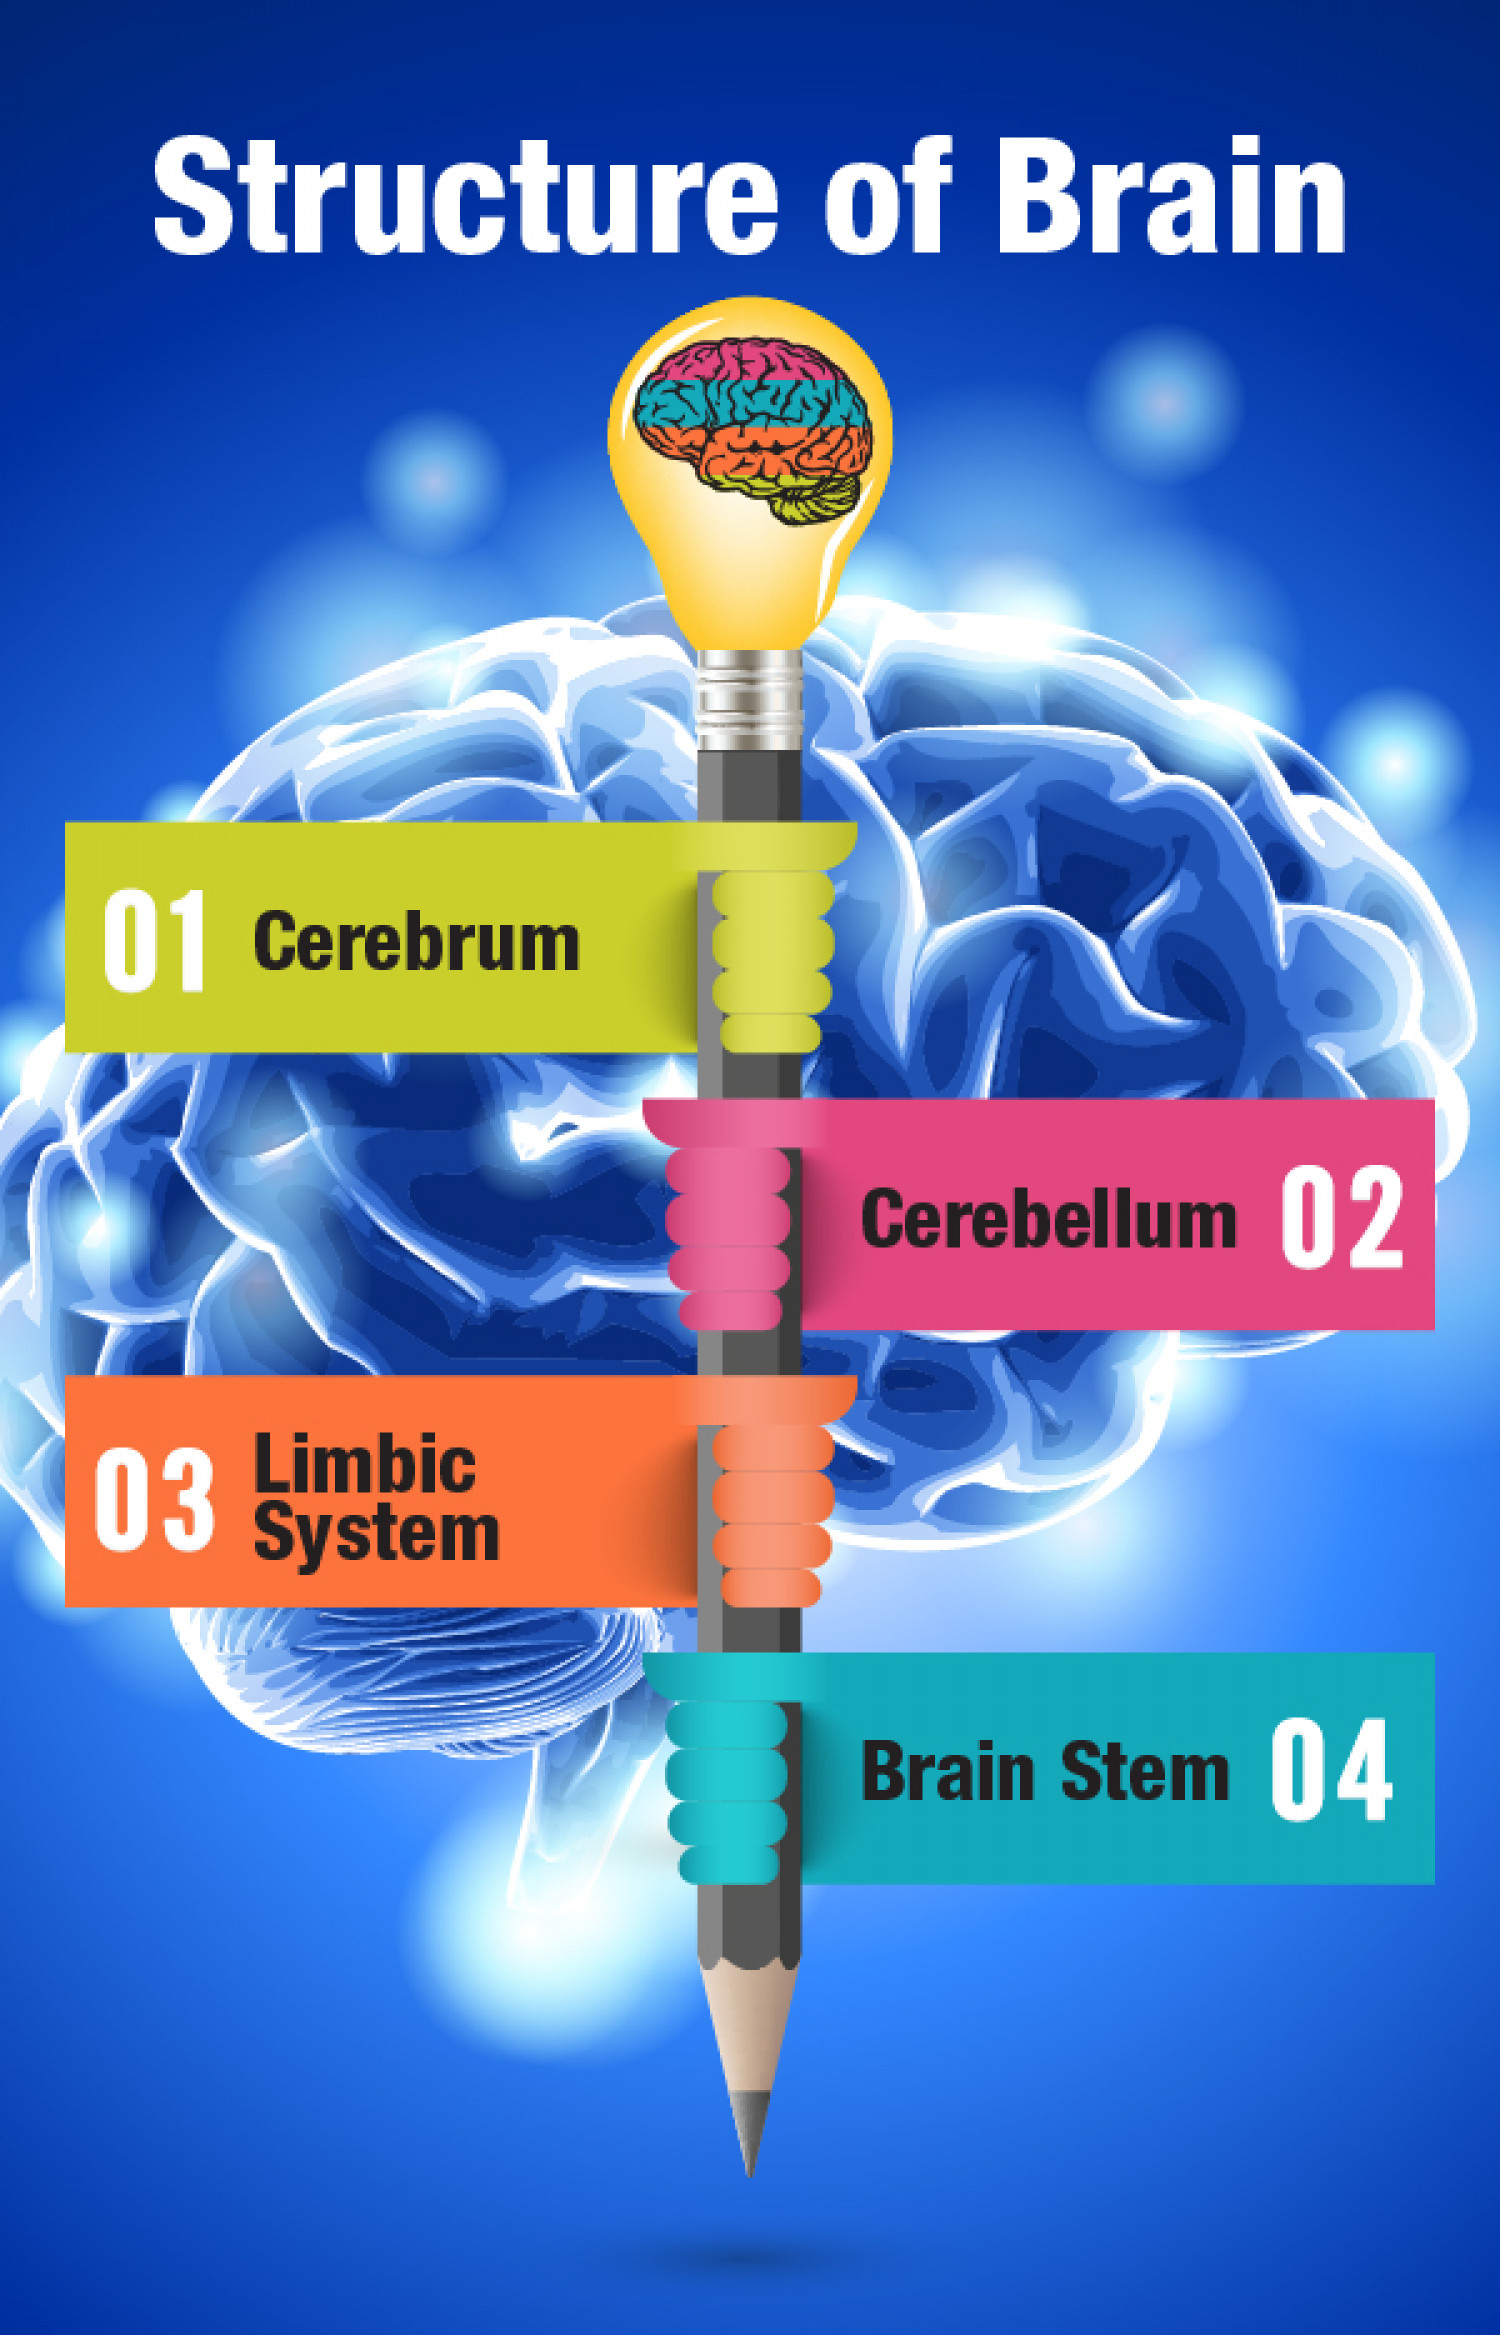 Structure of Brain Infographic